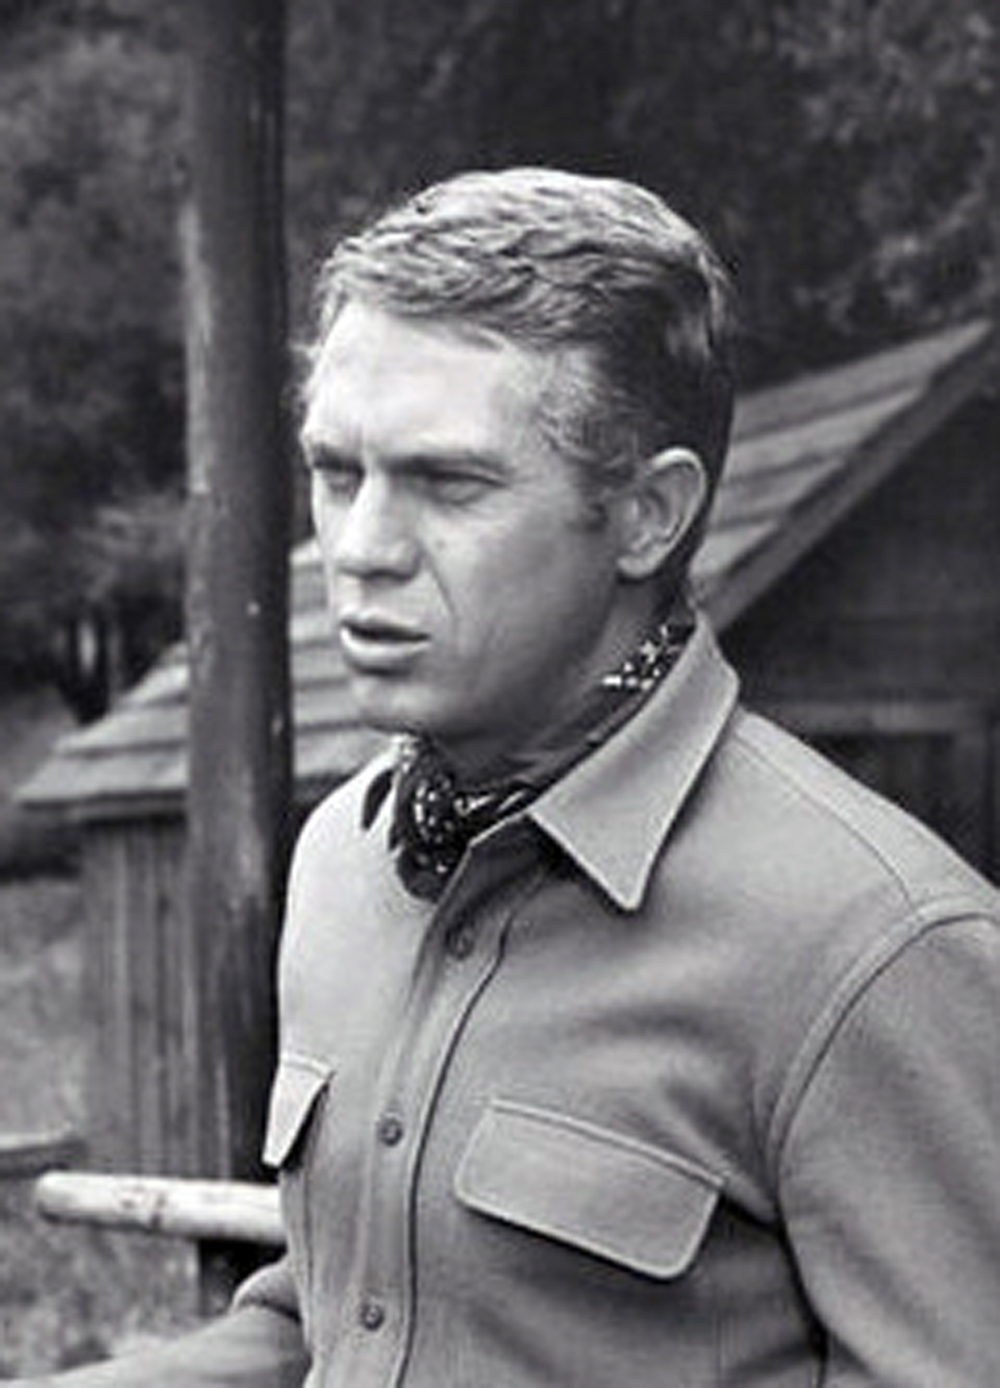 steve mcqueen films. Black Bedroom Furniture Sets. Home Design Ideas